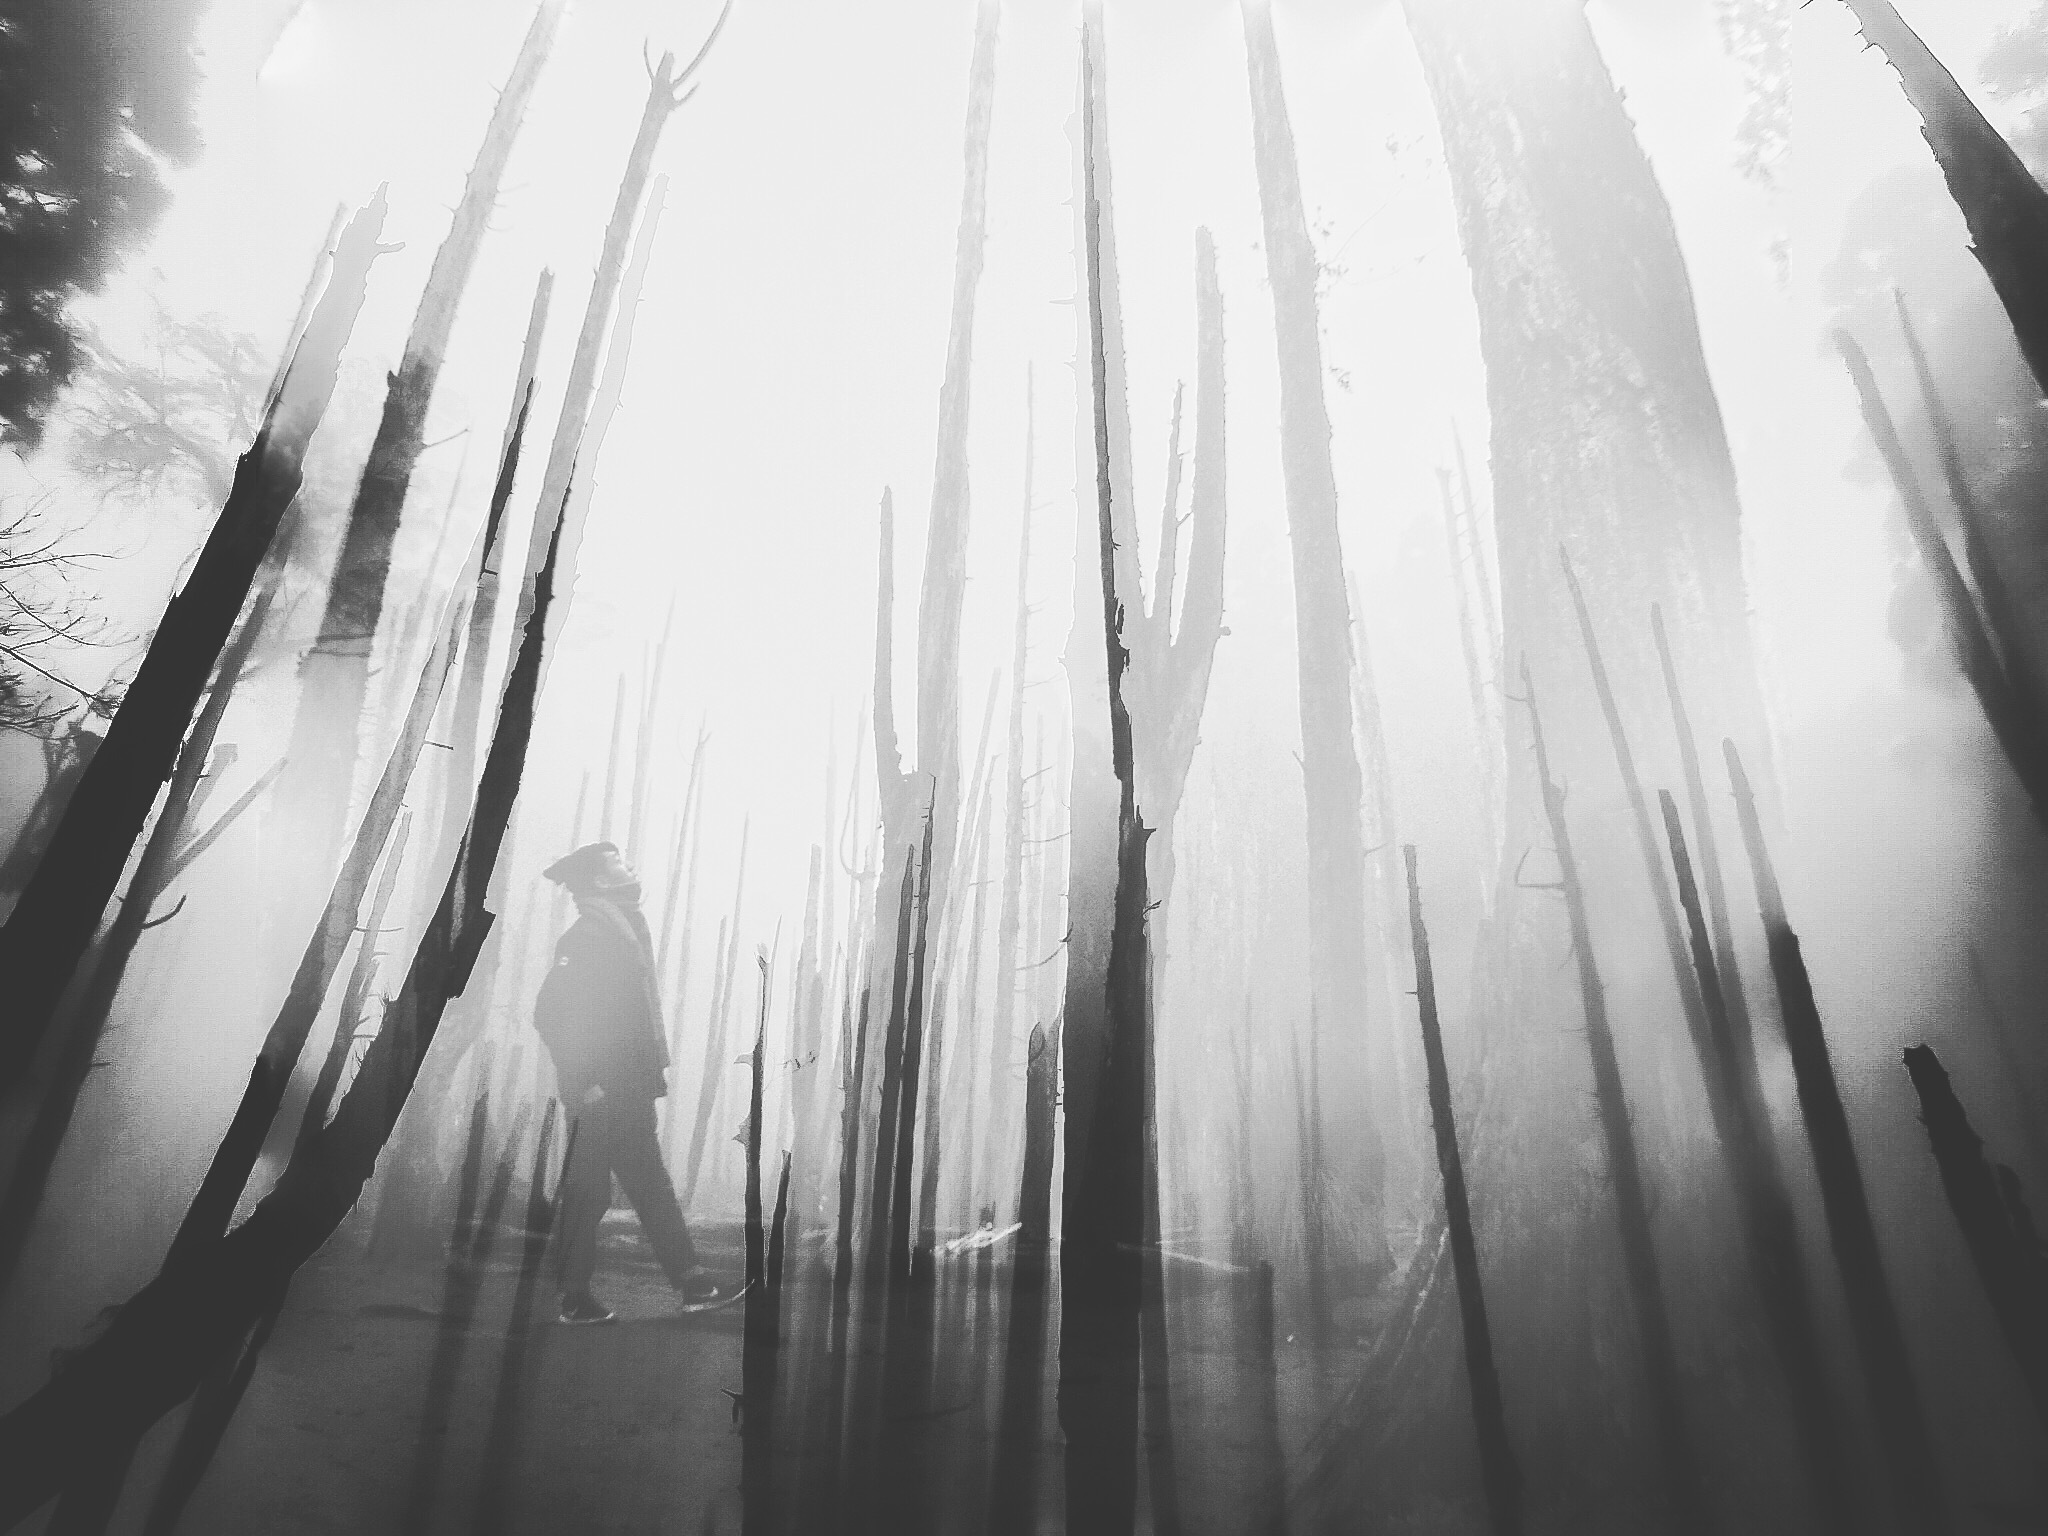 Double exposure by MK